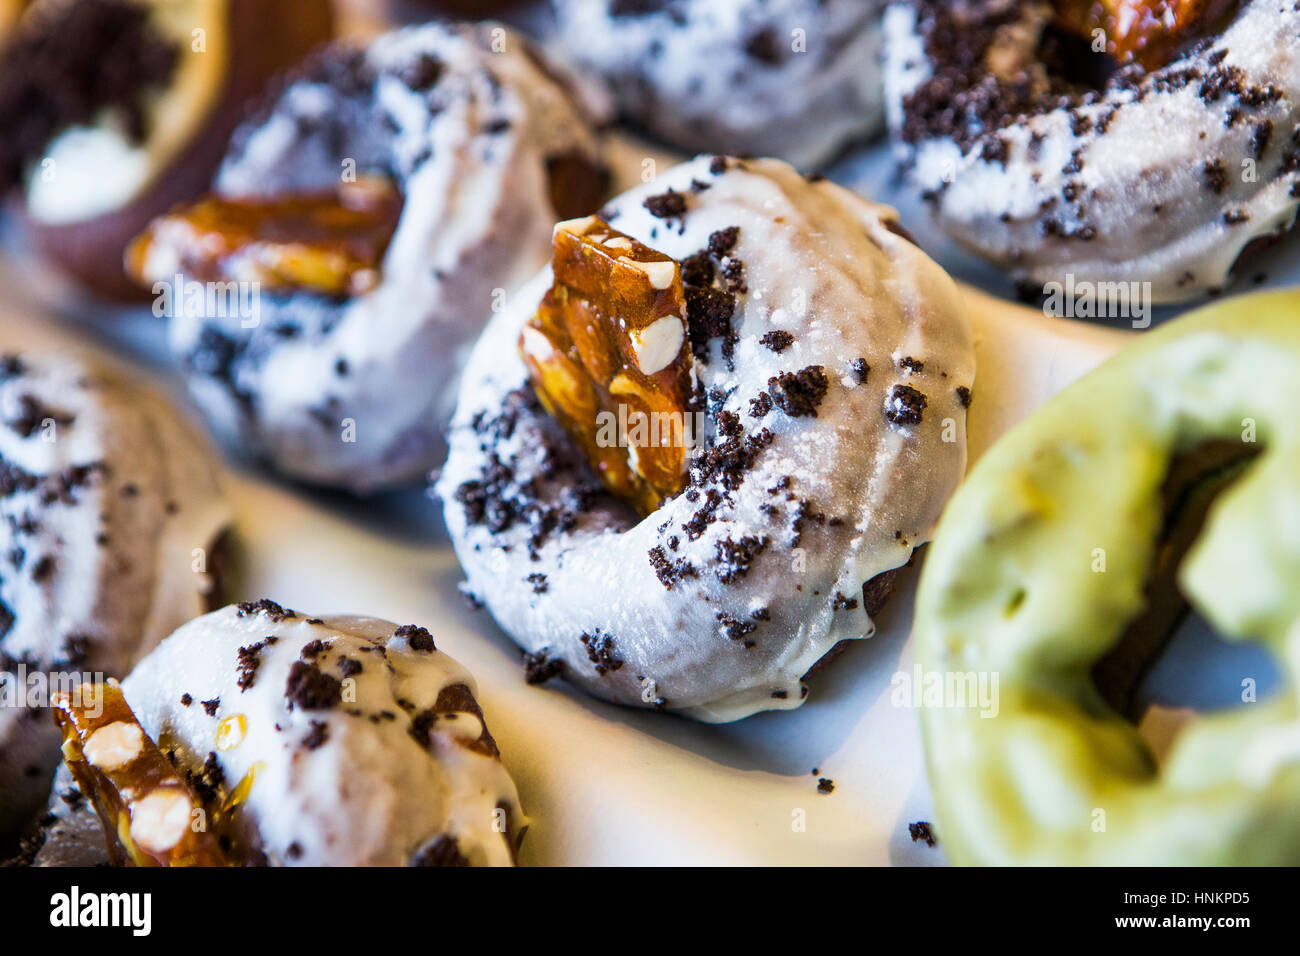 Glazed doughnuts with nut brittle on sale on food stall. - Stock Image